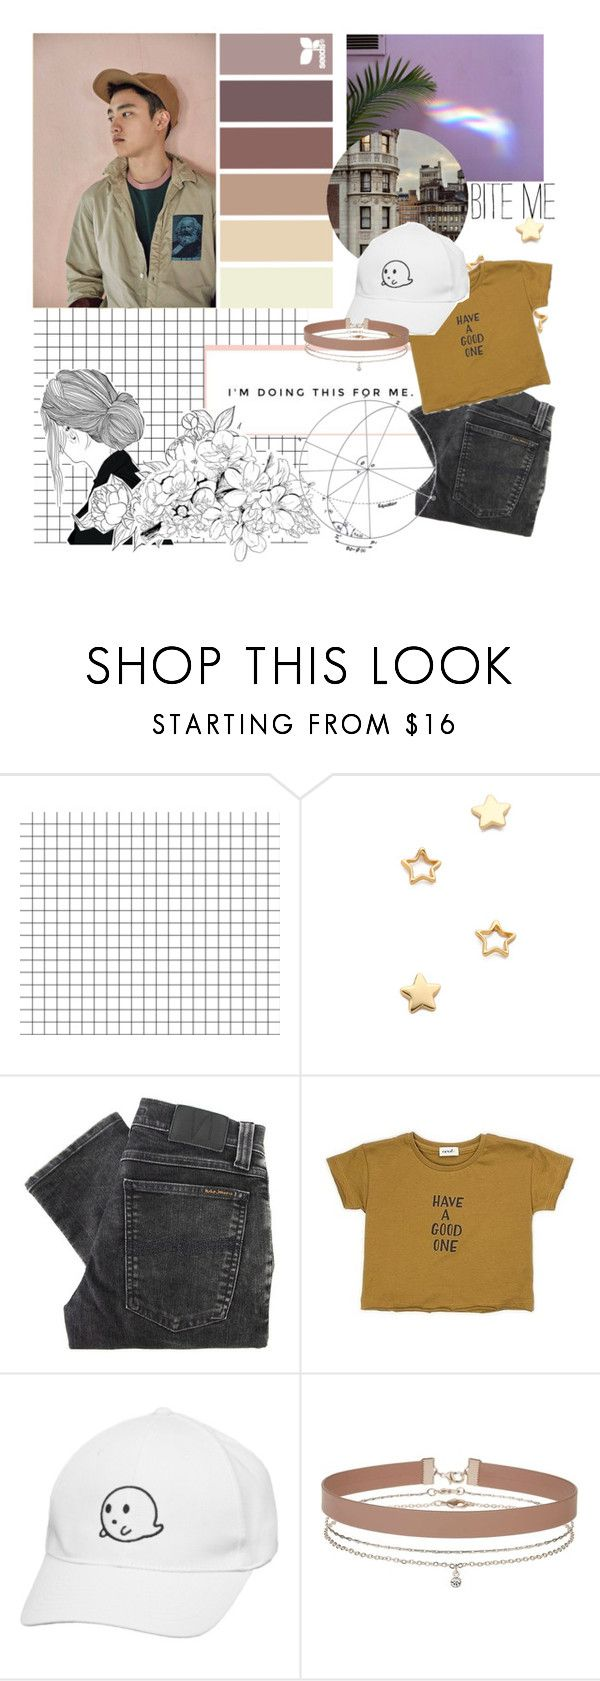 """""""I'm Doing This For Me"""" by lifeisaheadofus ❤ liked on Polyvore featuring Gorjana, Nudie Jeans Co. and Miss Selfridge"""